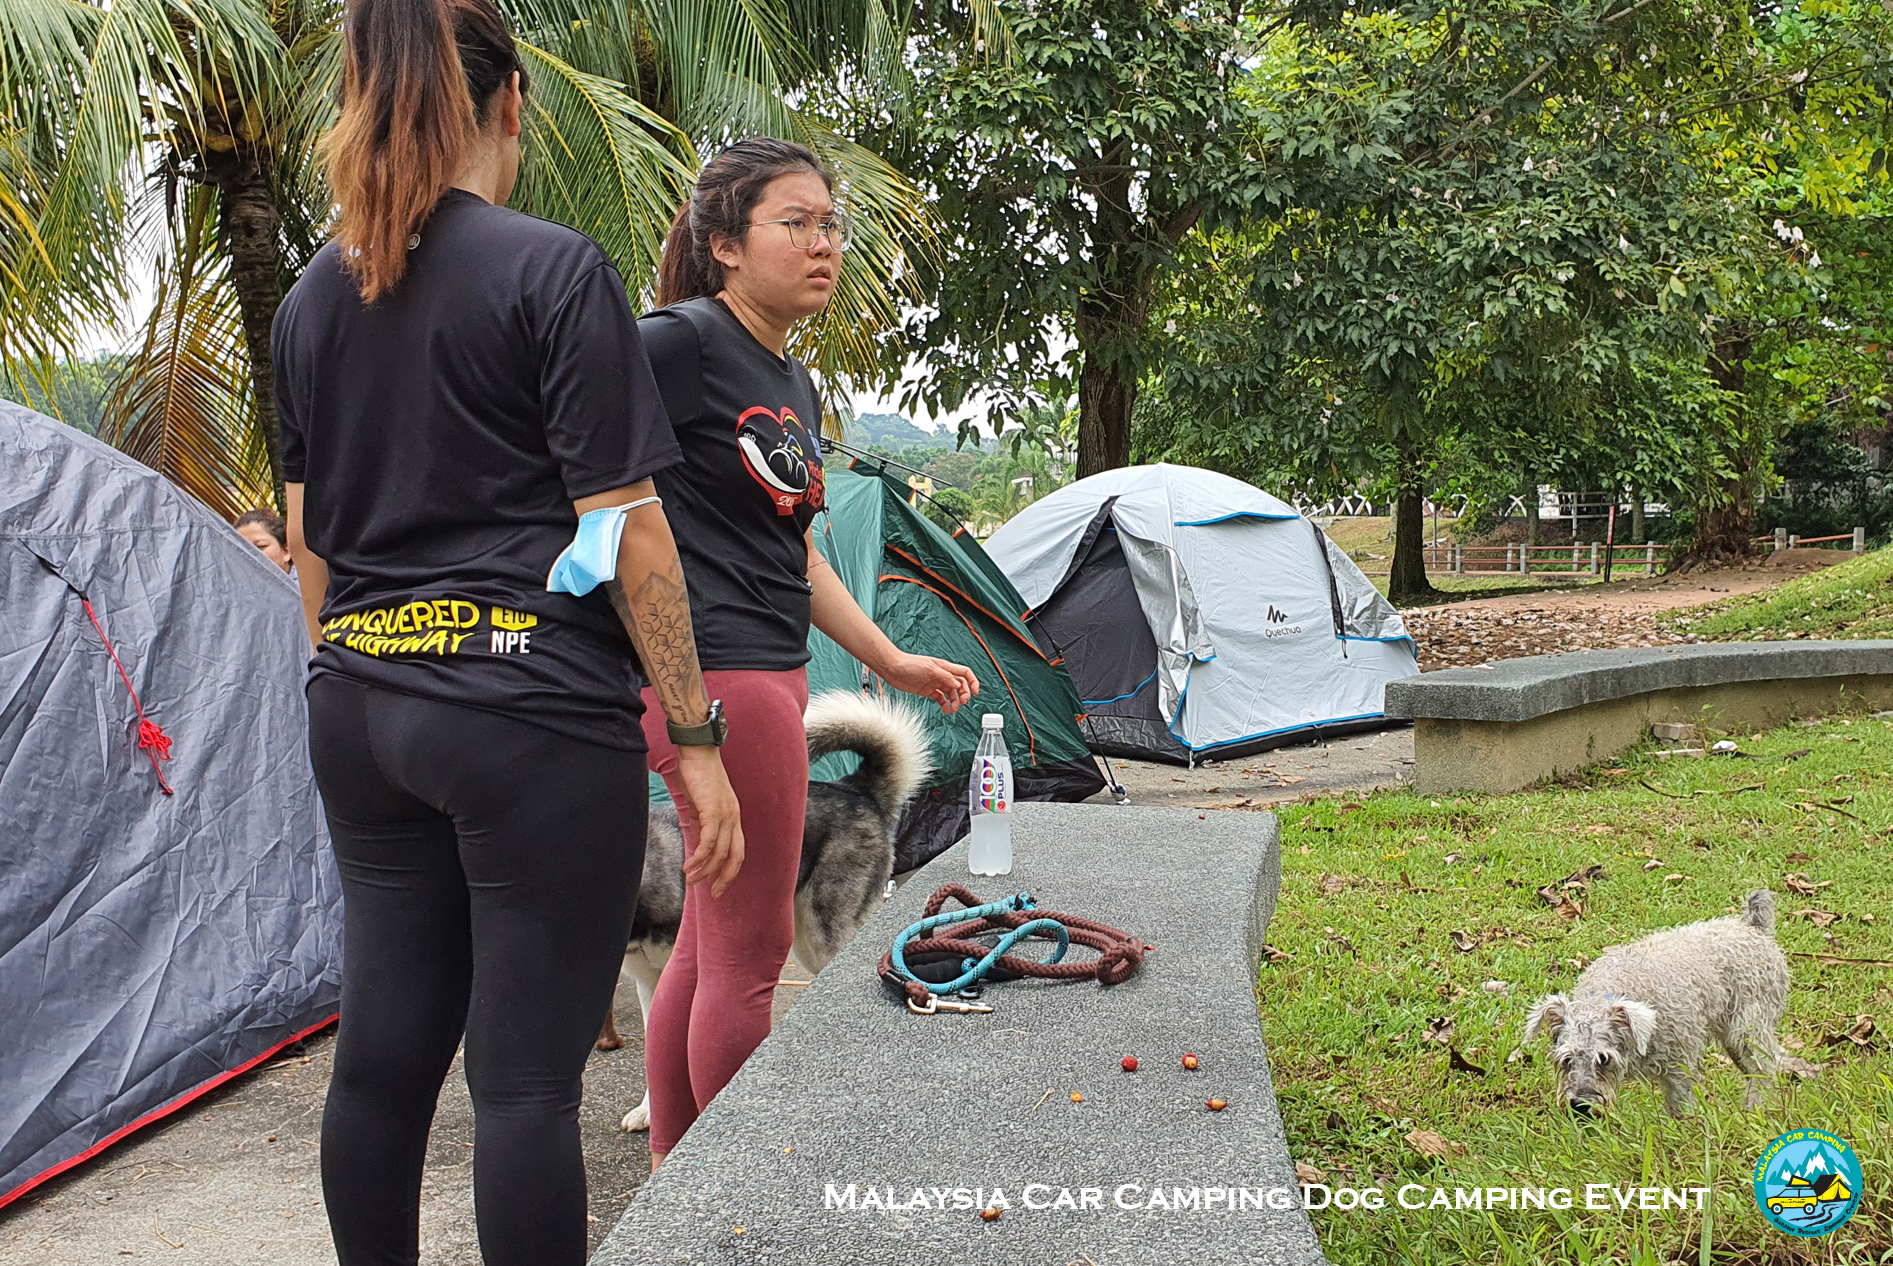 dog_camping_event_dog_lover_selangor_camping_site_malaysia_car_camping_private_event_organizer-4